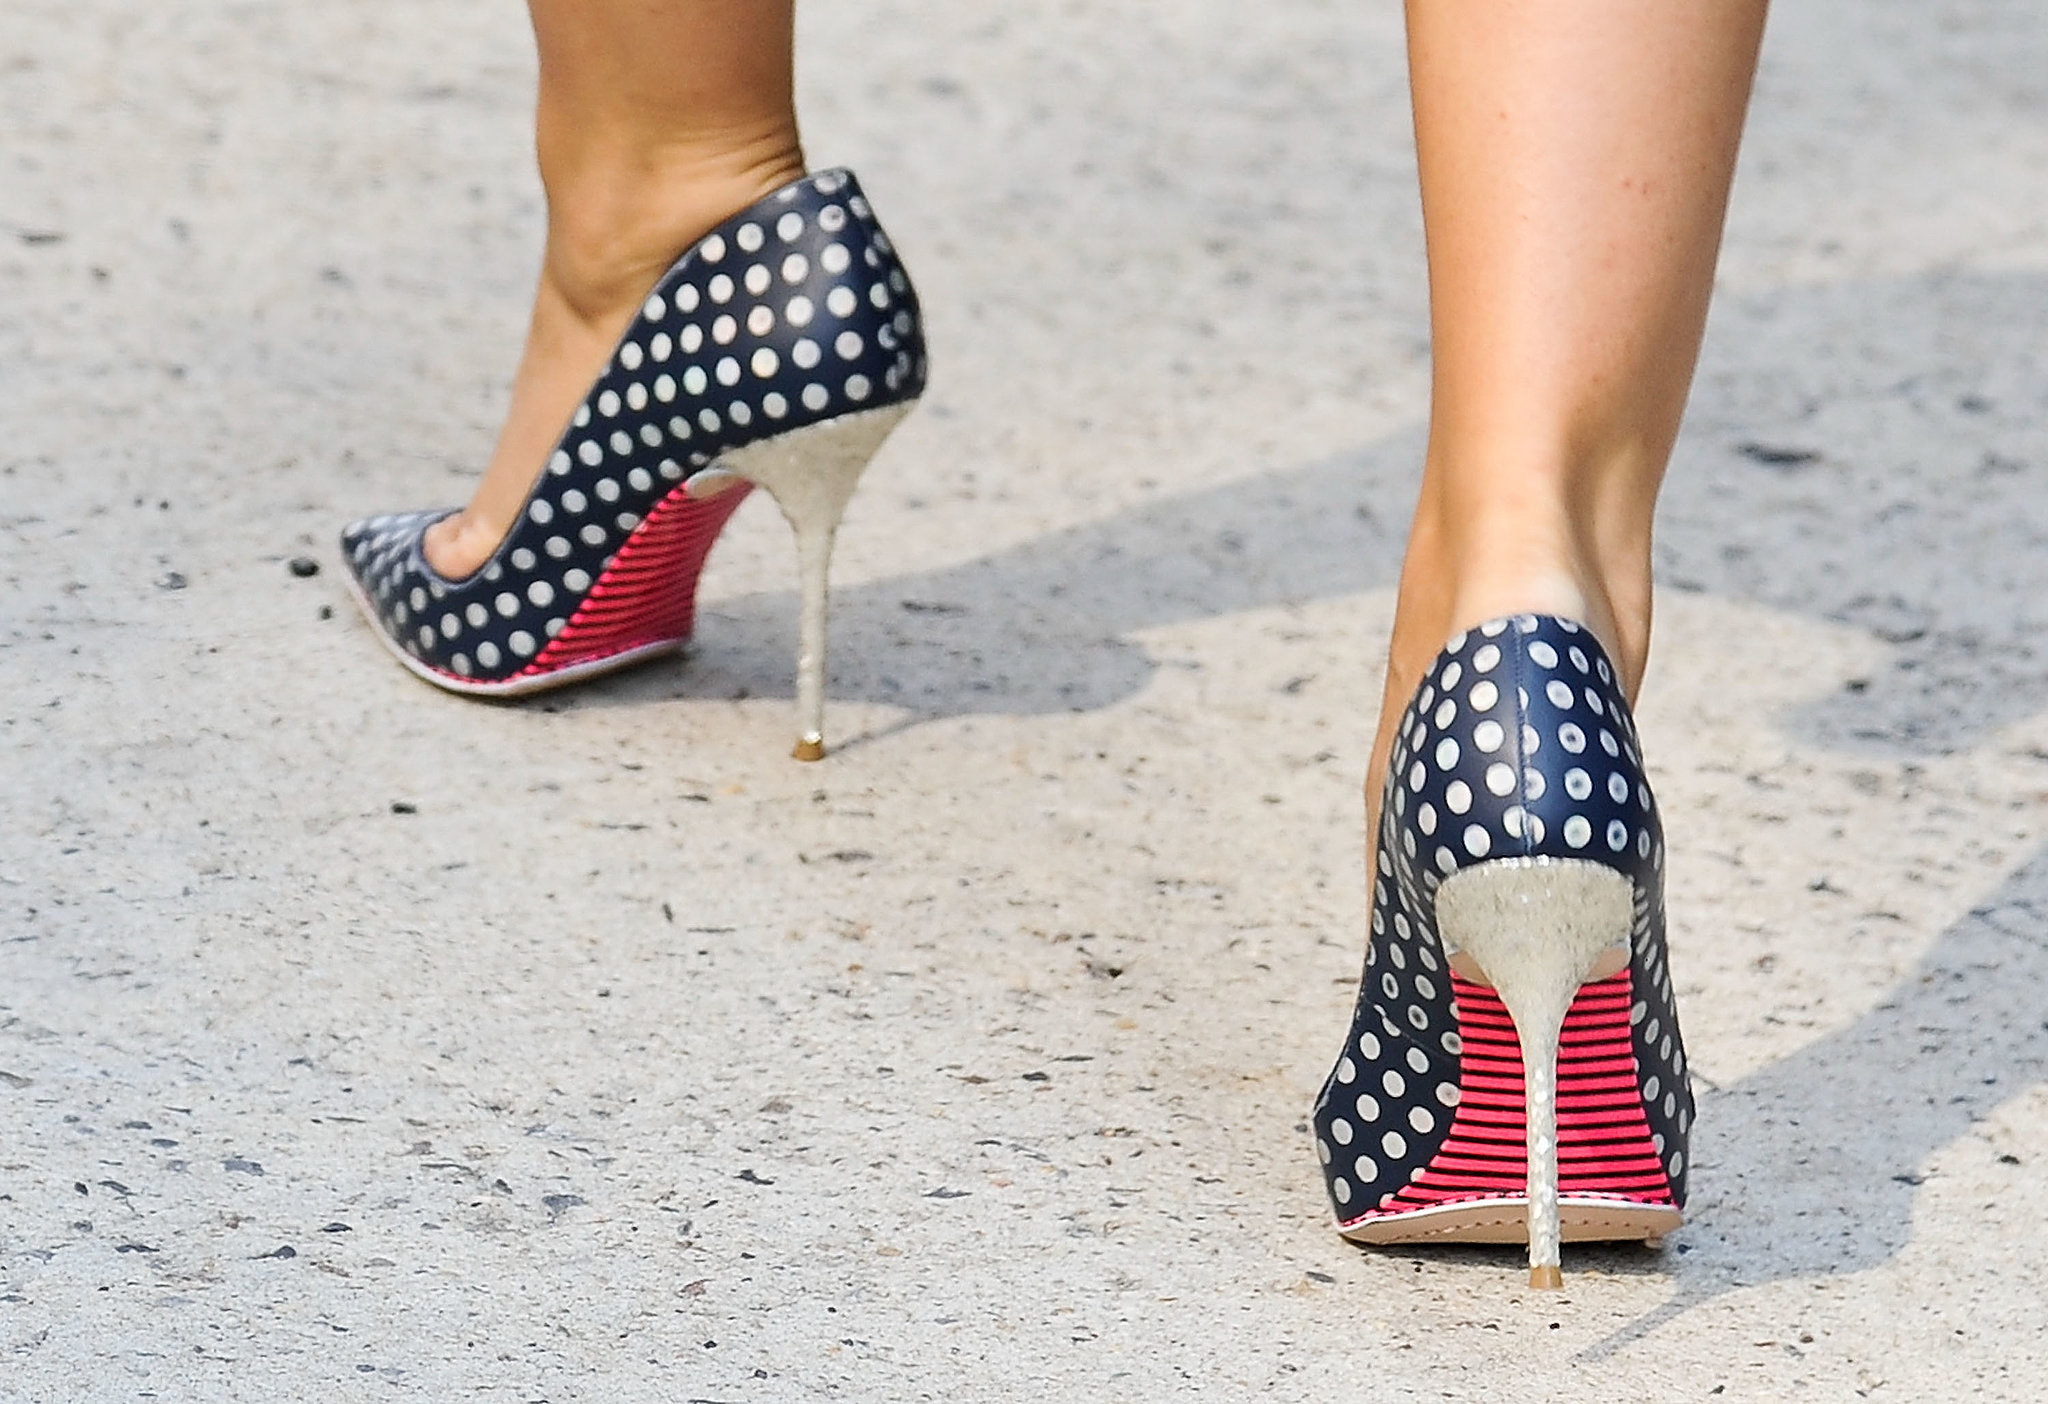 This heel packed a punch with stripes and polka dots.